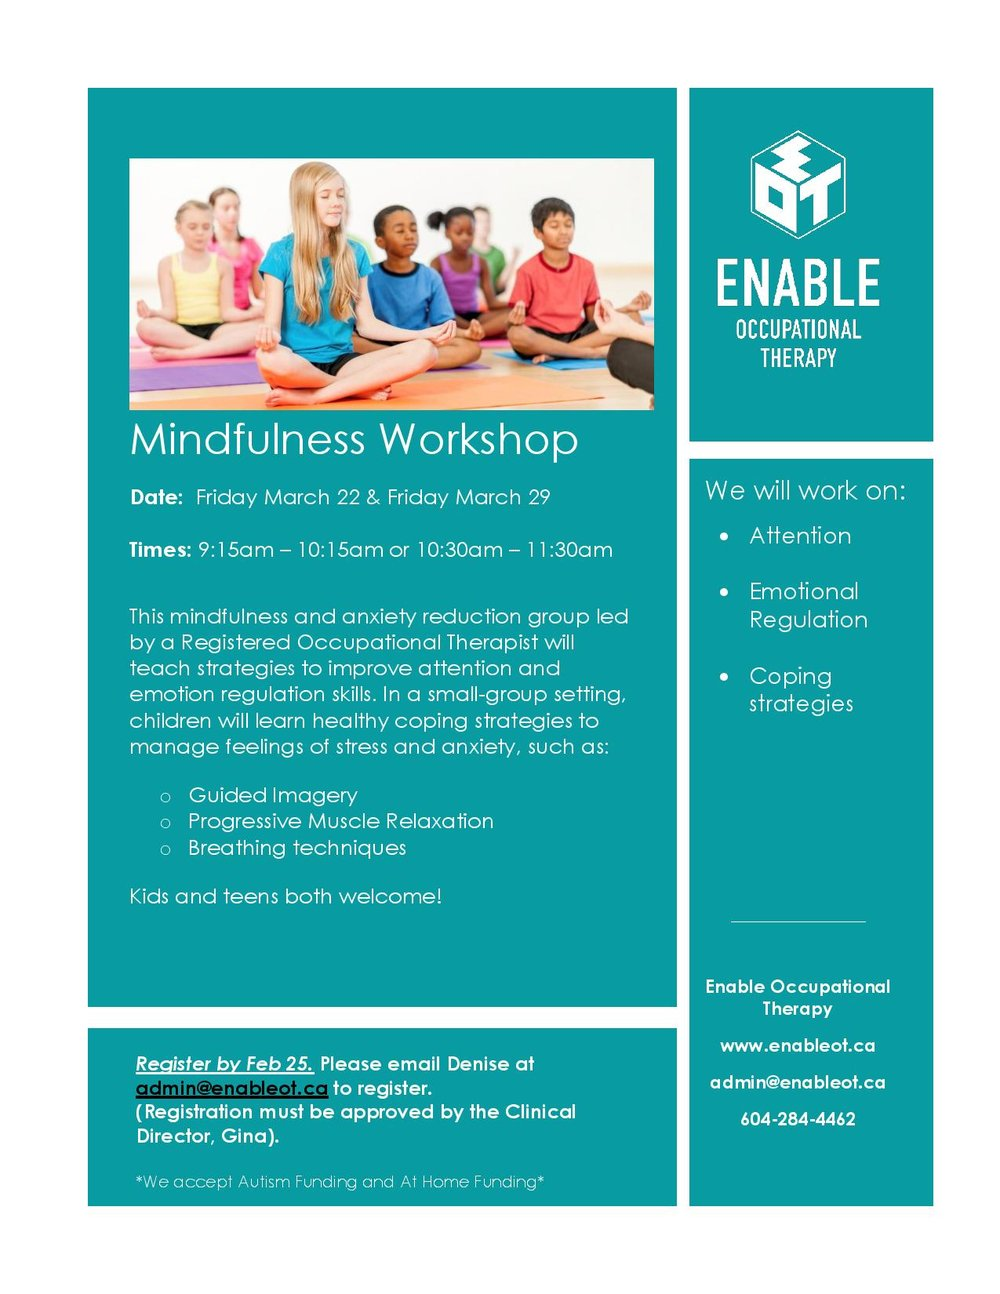 Mindfulness Workshop Poster.jpg